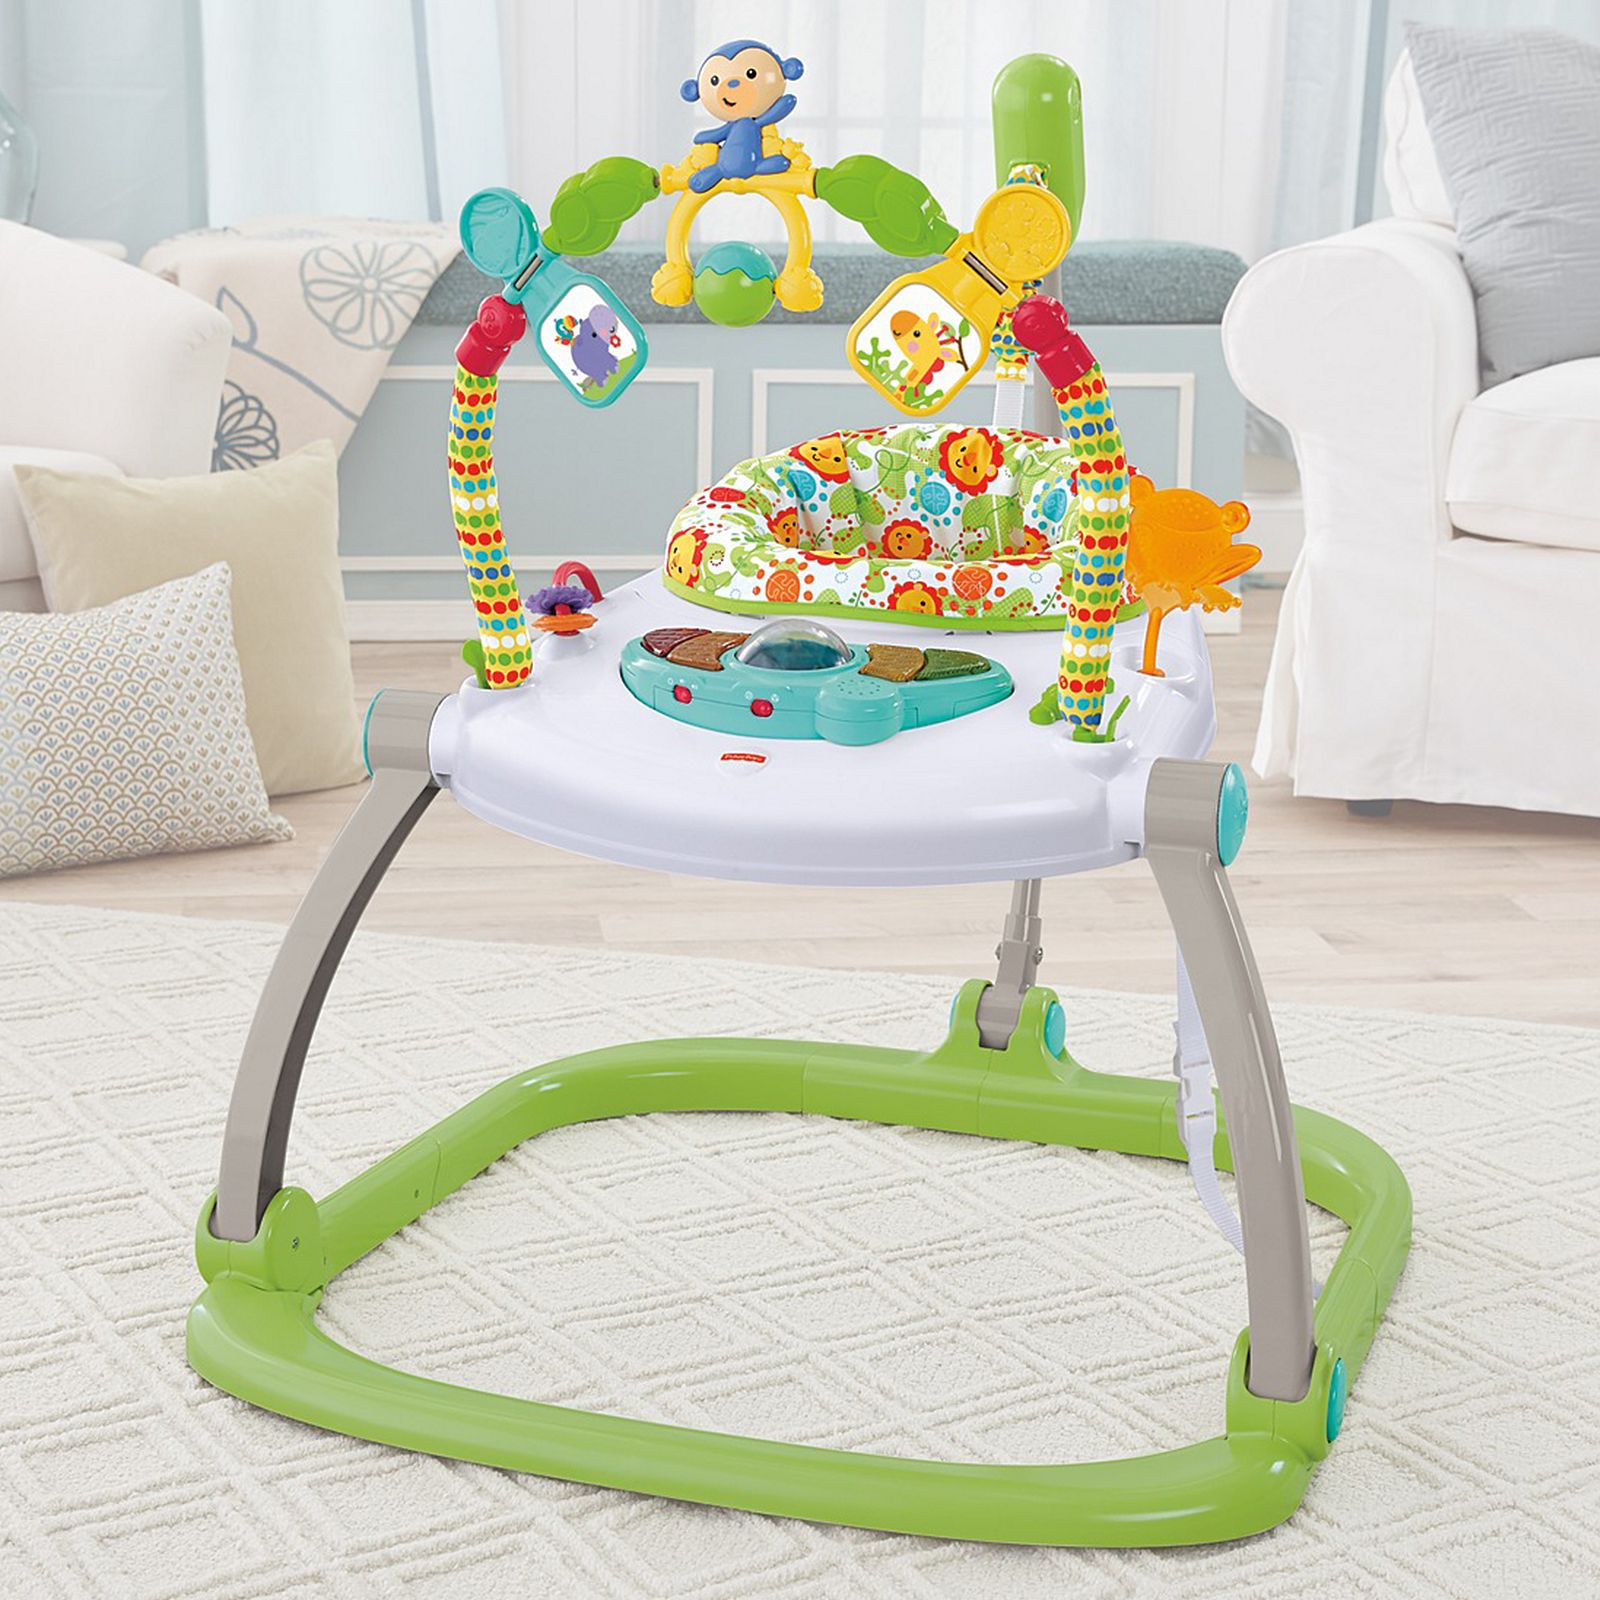 474d464c9 Rainforest Friends SpaceSaver Jumperoo®